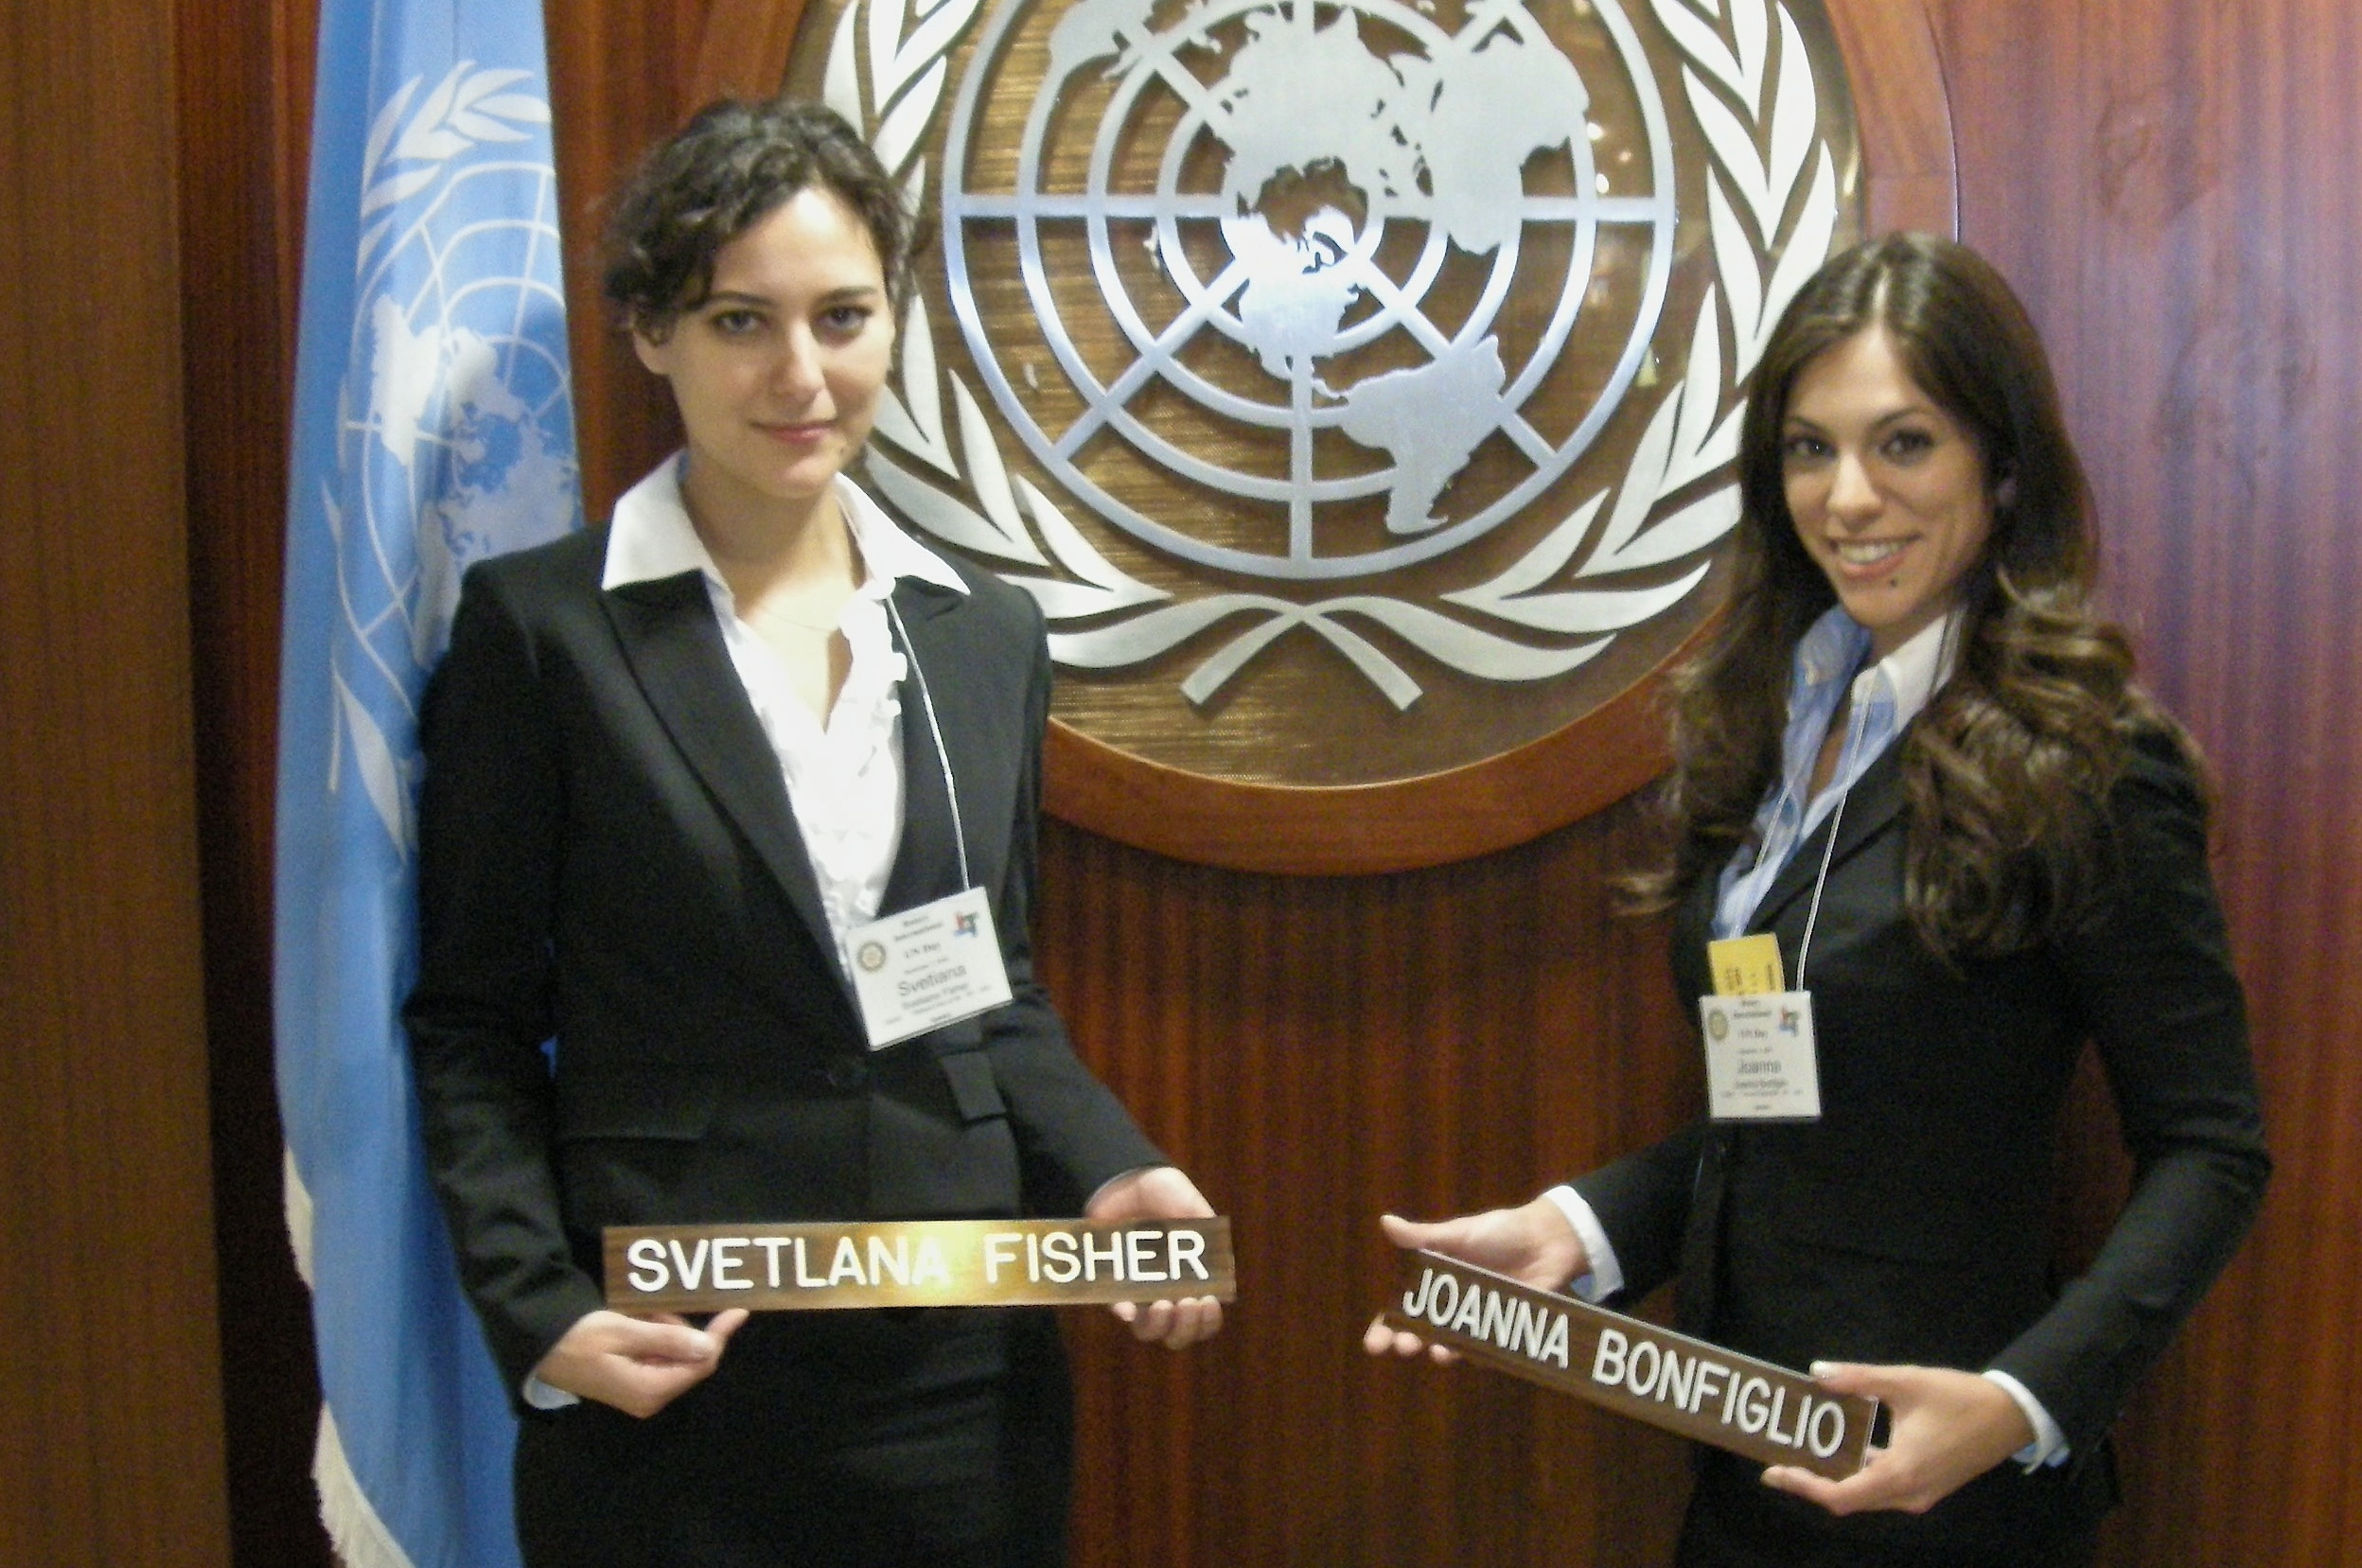 Svetlana Fisher, left, and Joanna Bonfiglio with CCNY Engineers Without Borders delivered a presentation on the group's Honduran water projects at a Rotary International panel on water issues held at the United Nations.